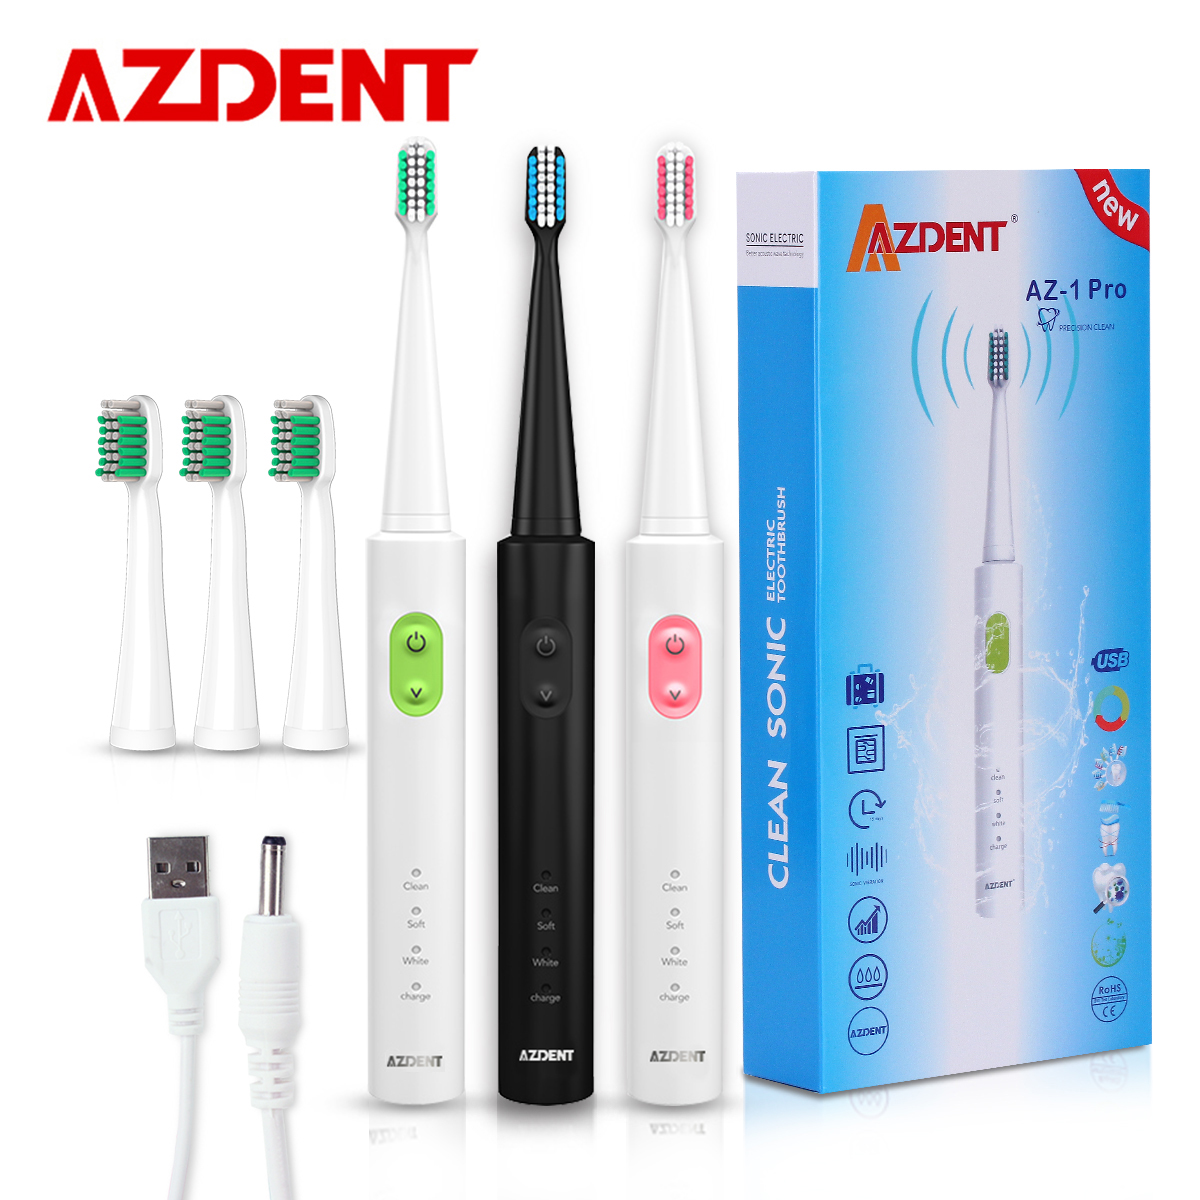 AZDENT New AZ-1 Pro Sonic Electric Toothbrush Rechargeable USB Charge 4 Pcs Replaceable Heads Timer Teeth Tooth Brush Waterproof